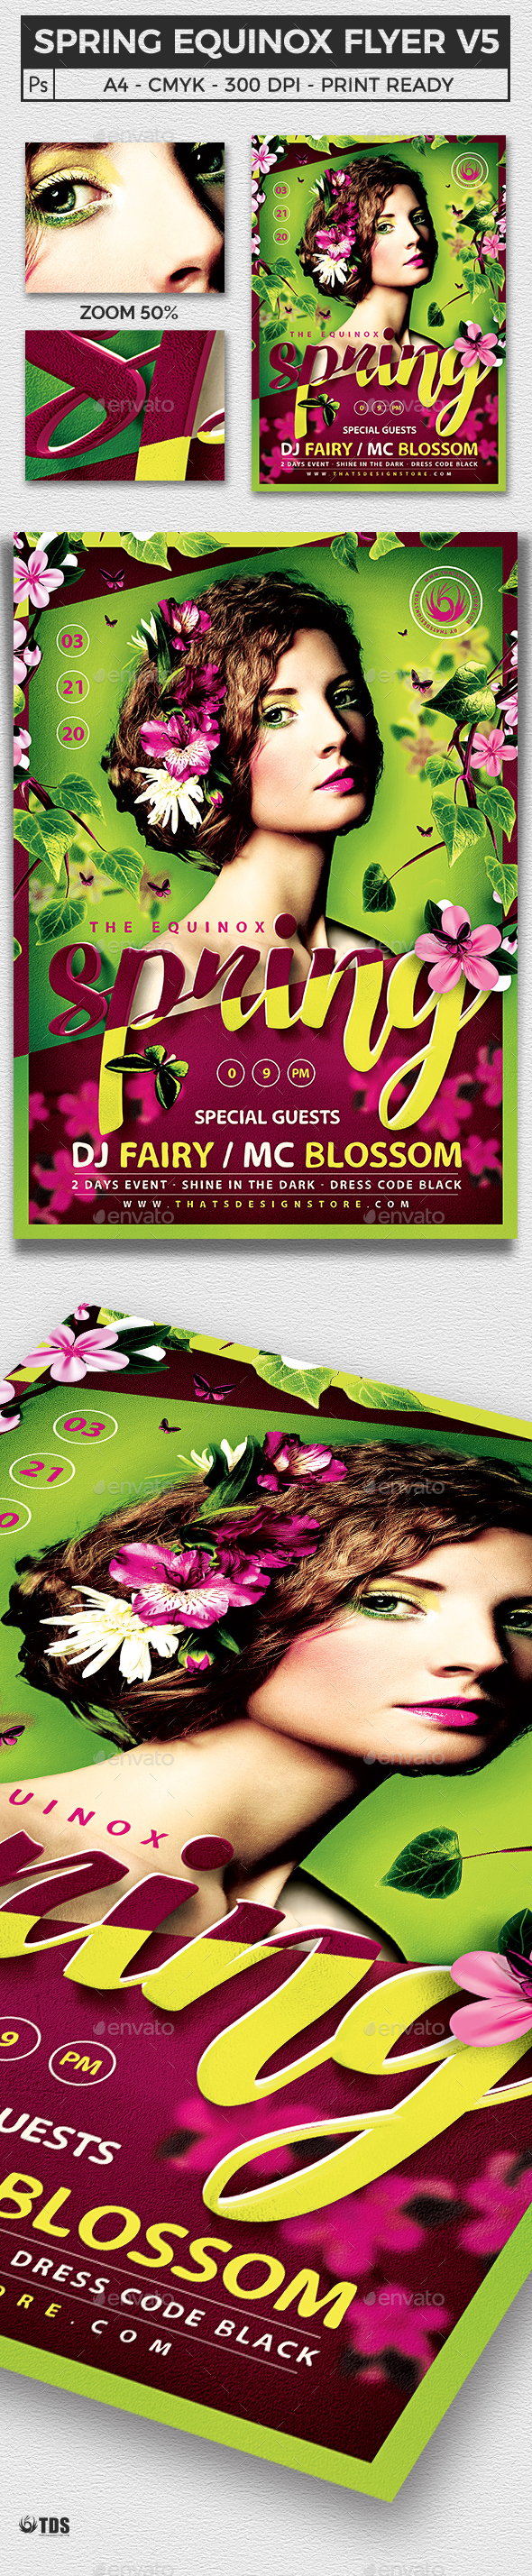 Spring Equinox Flyer Template V5 - Clubs & Parties Events